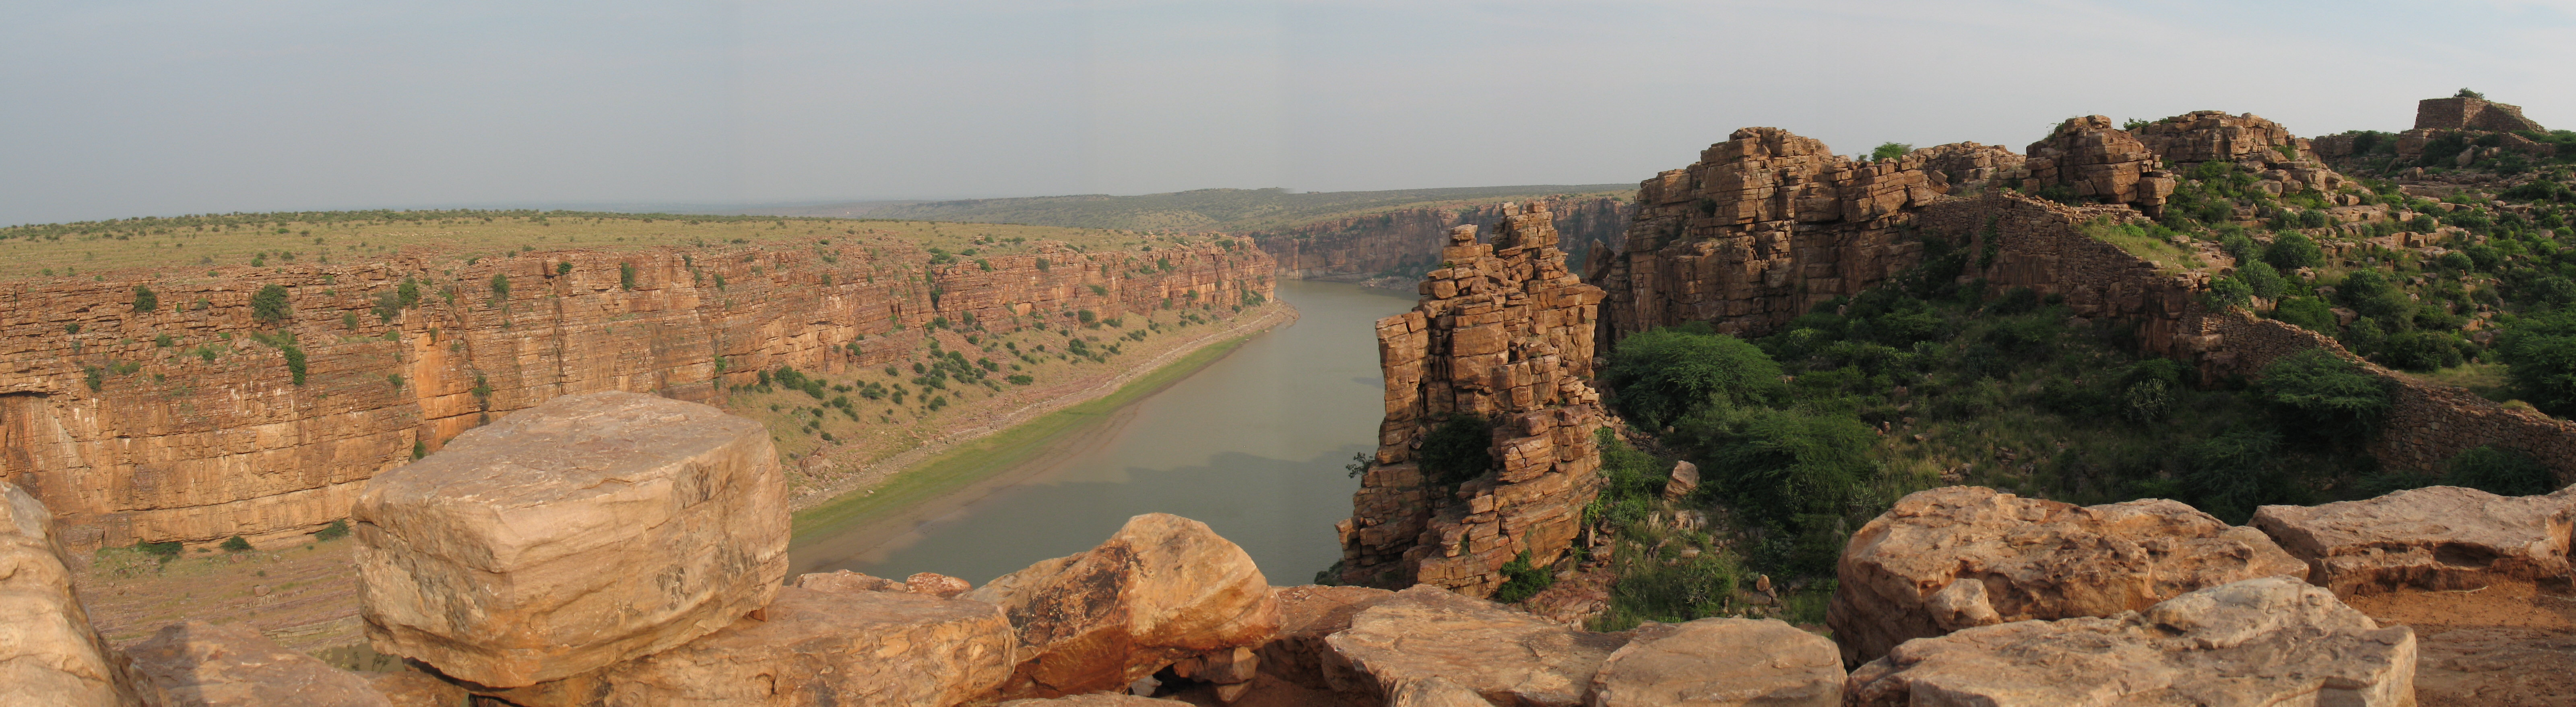 The Pennar river near Gandikota